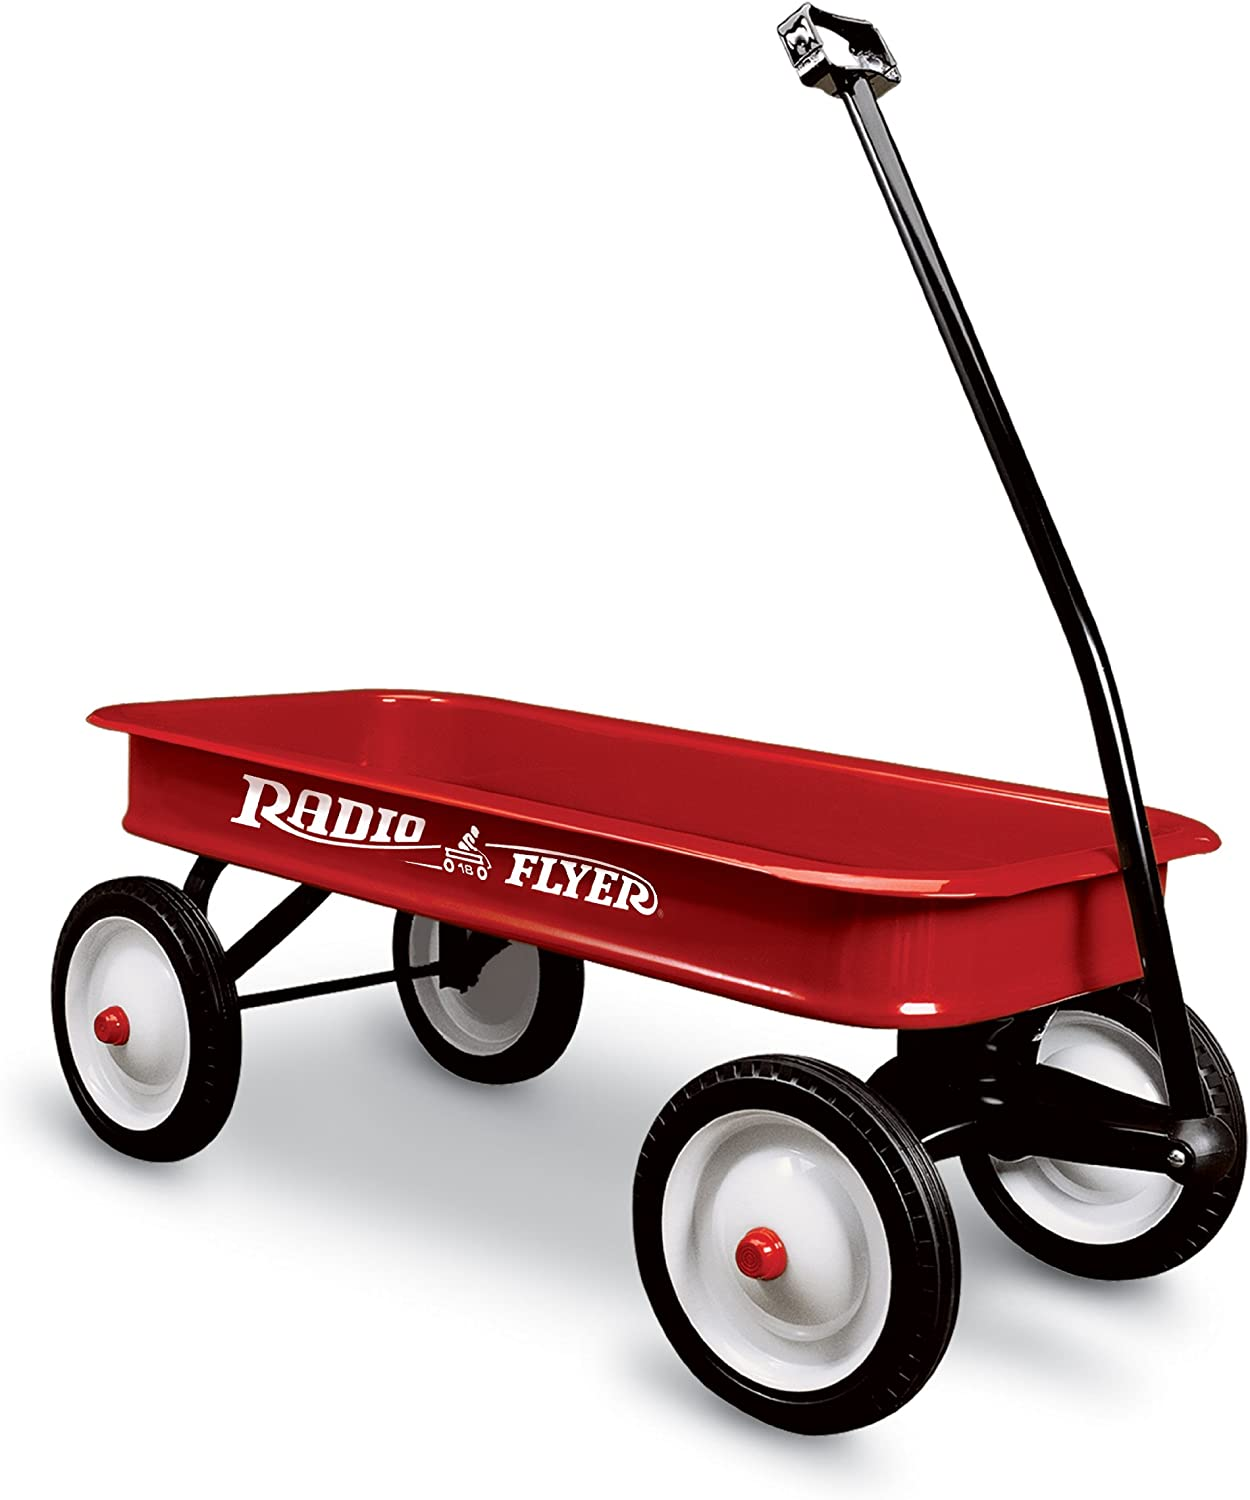 B00000IS6G Radio Flyer Classic Red Wagon 81r6chh7BWL.SL1500_